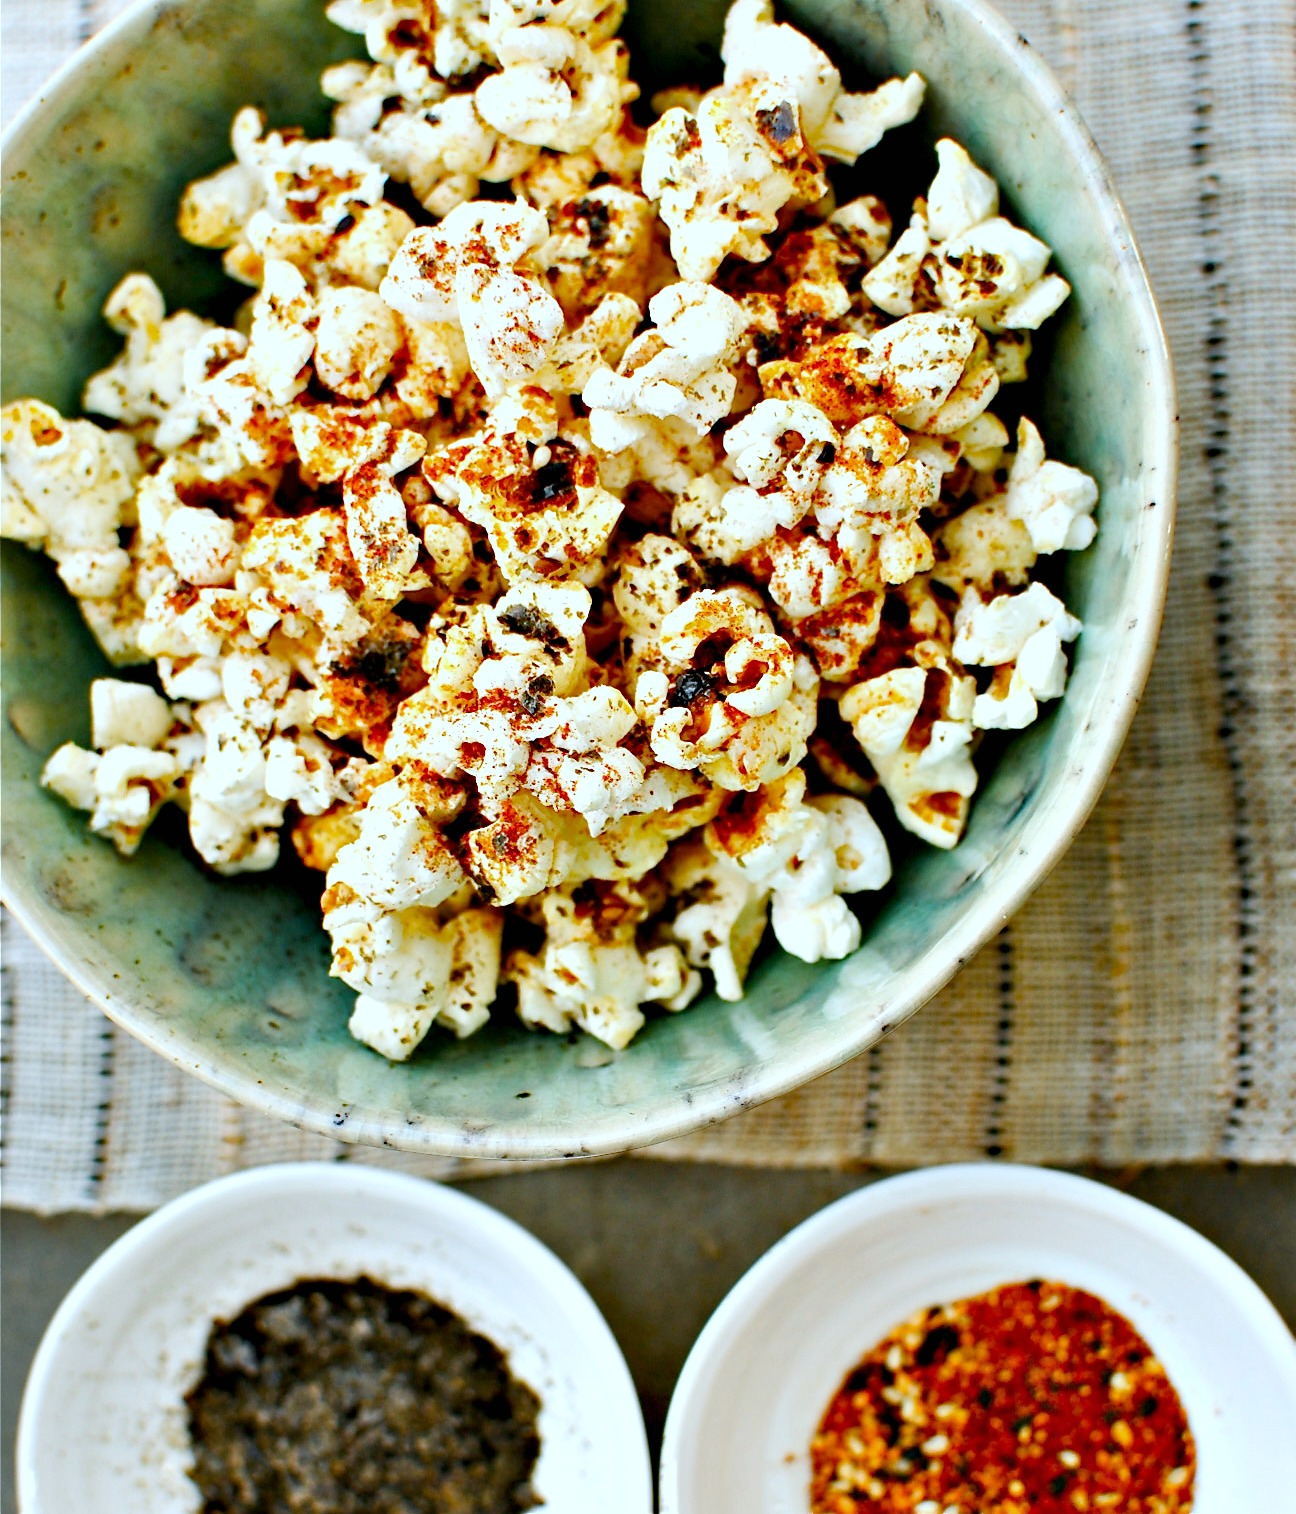 Spicy Seaweed (or Kale!) Popcorn + A Happy Life Lesson | food to glow